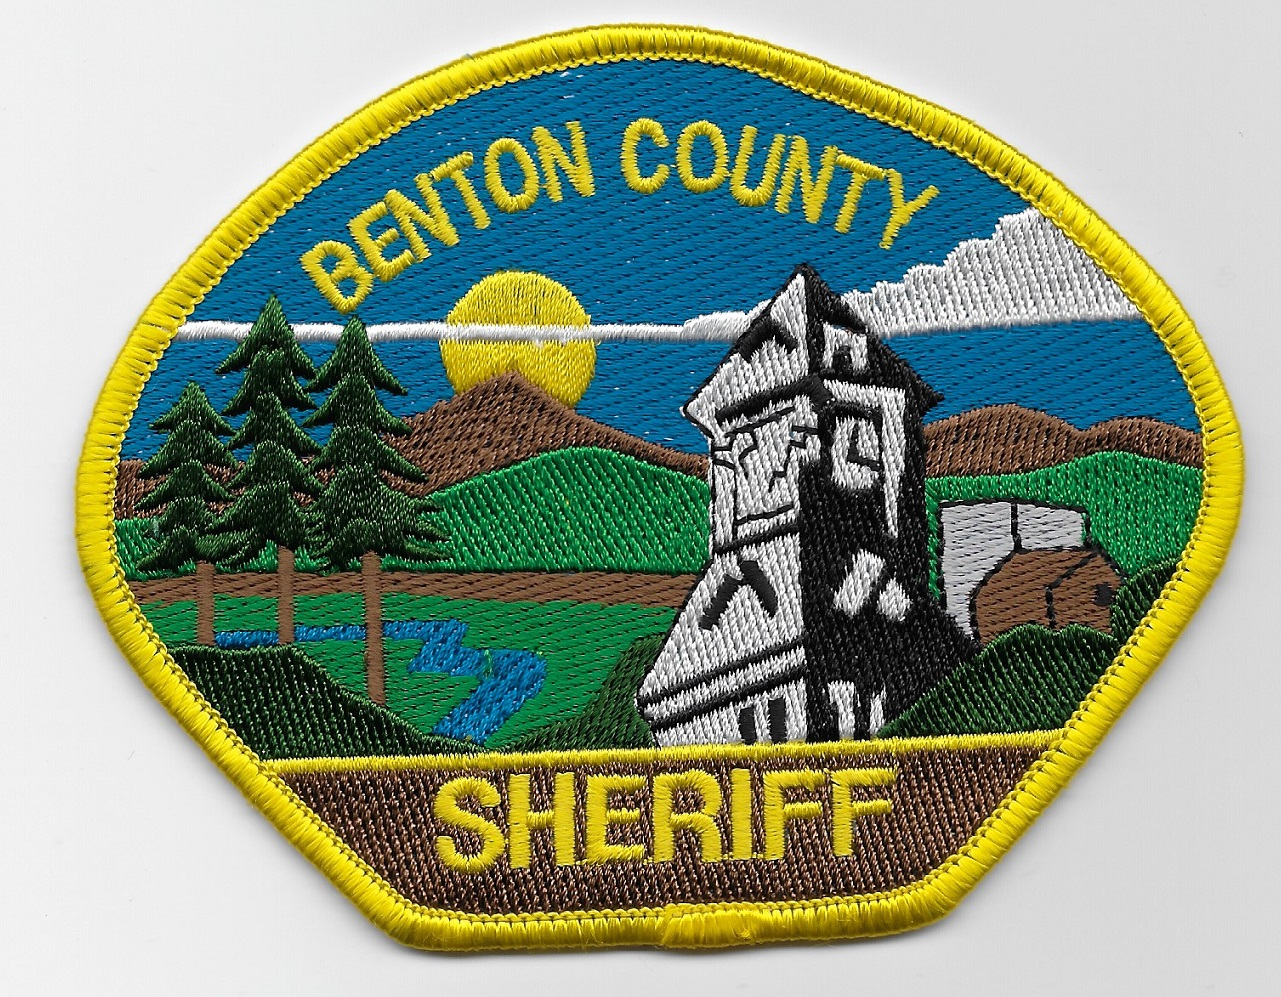 Benton County Sheriff OR